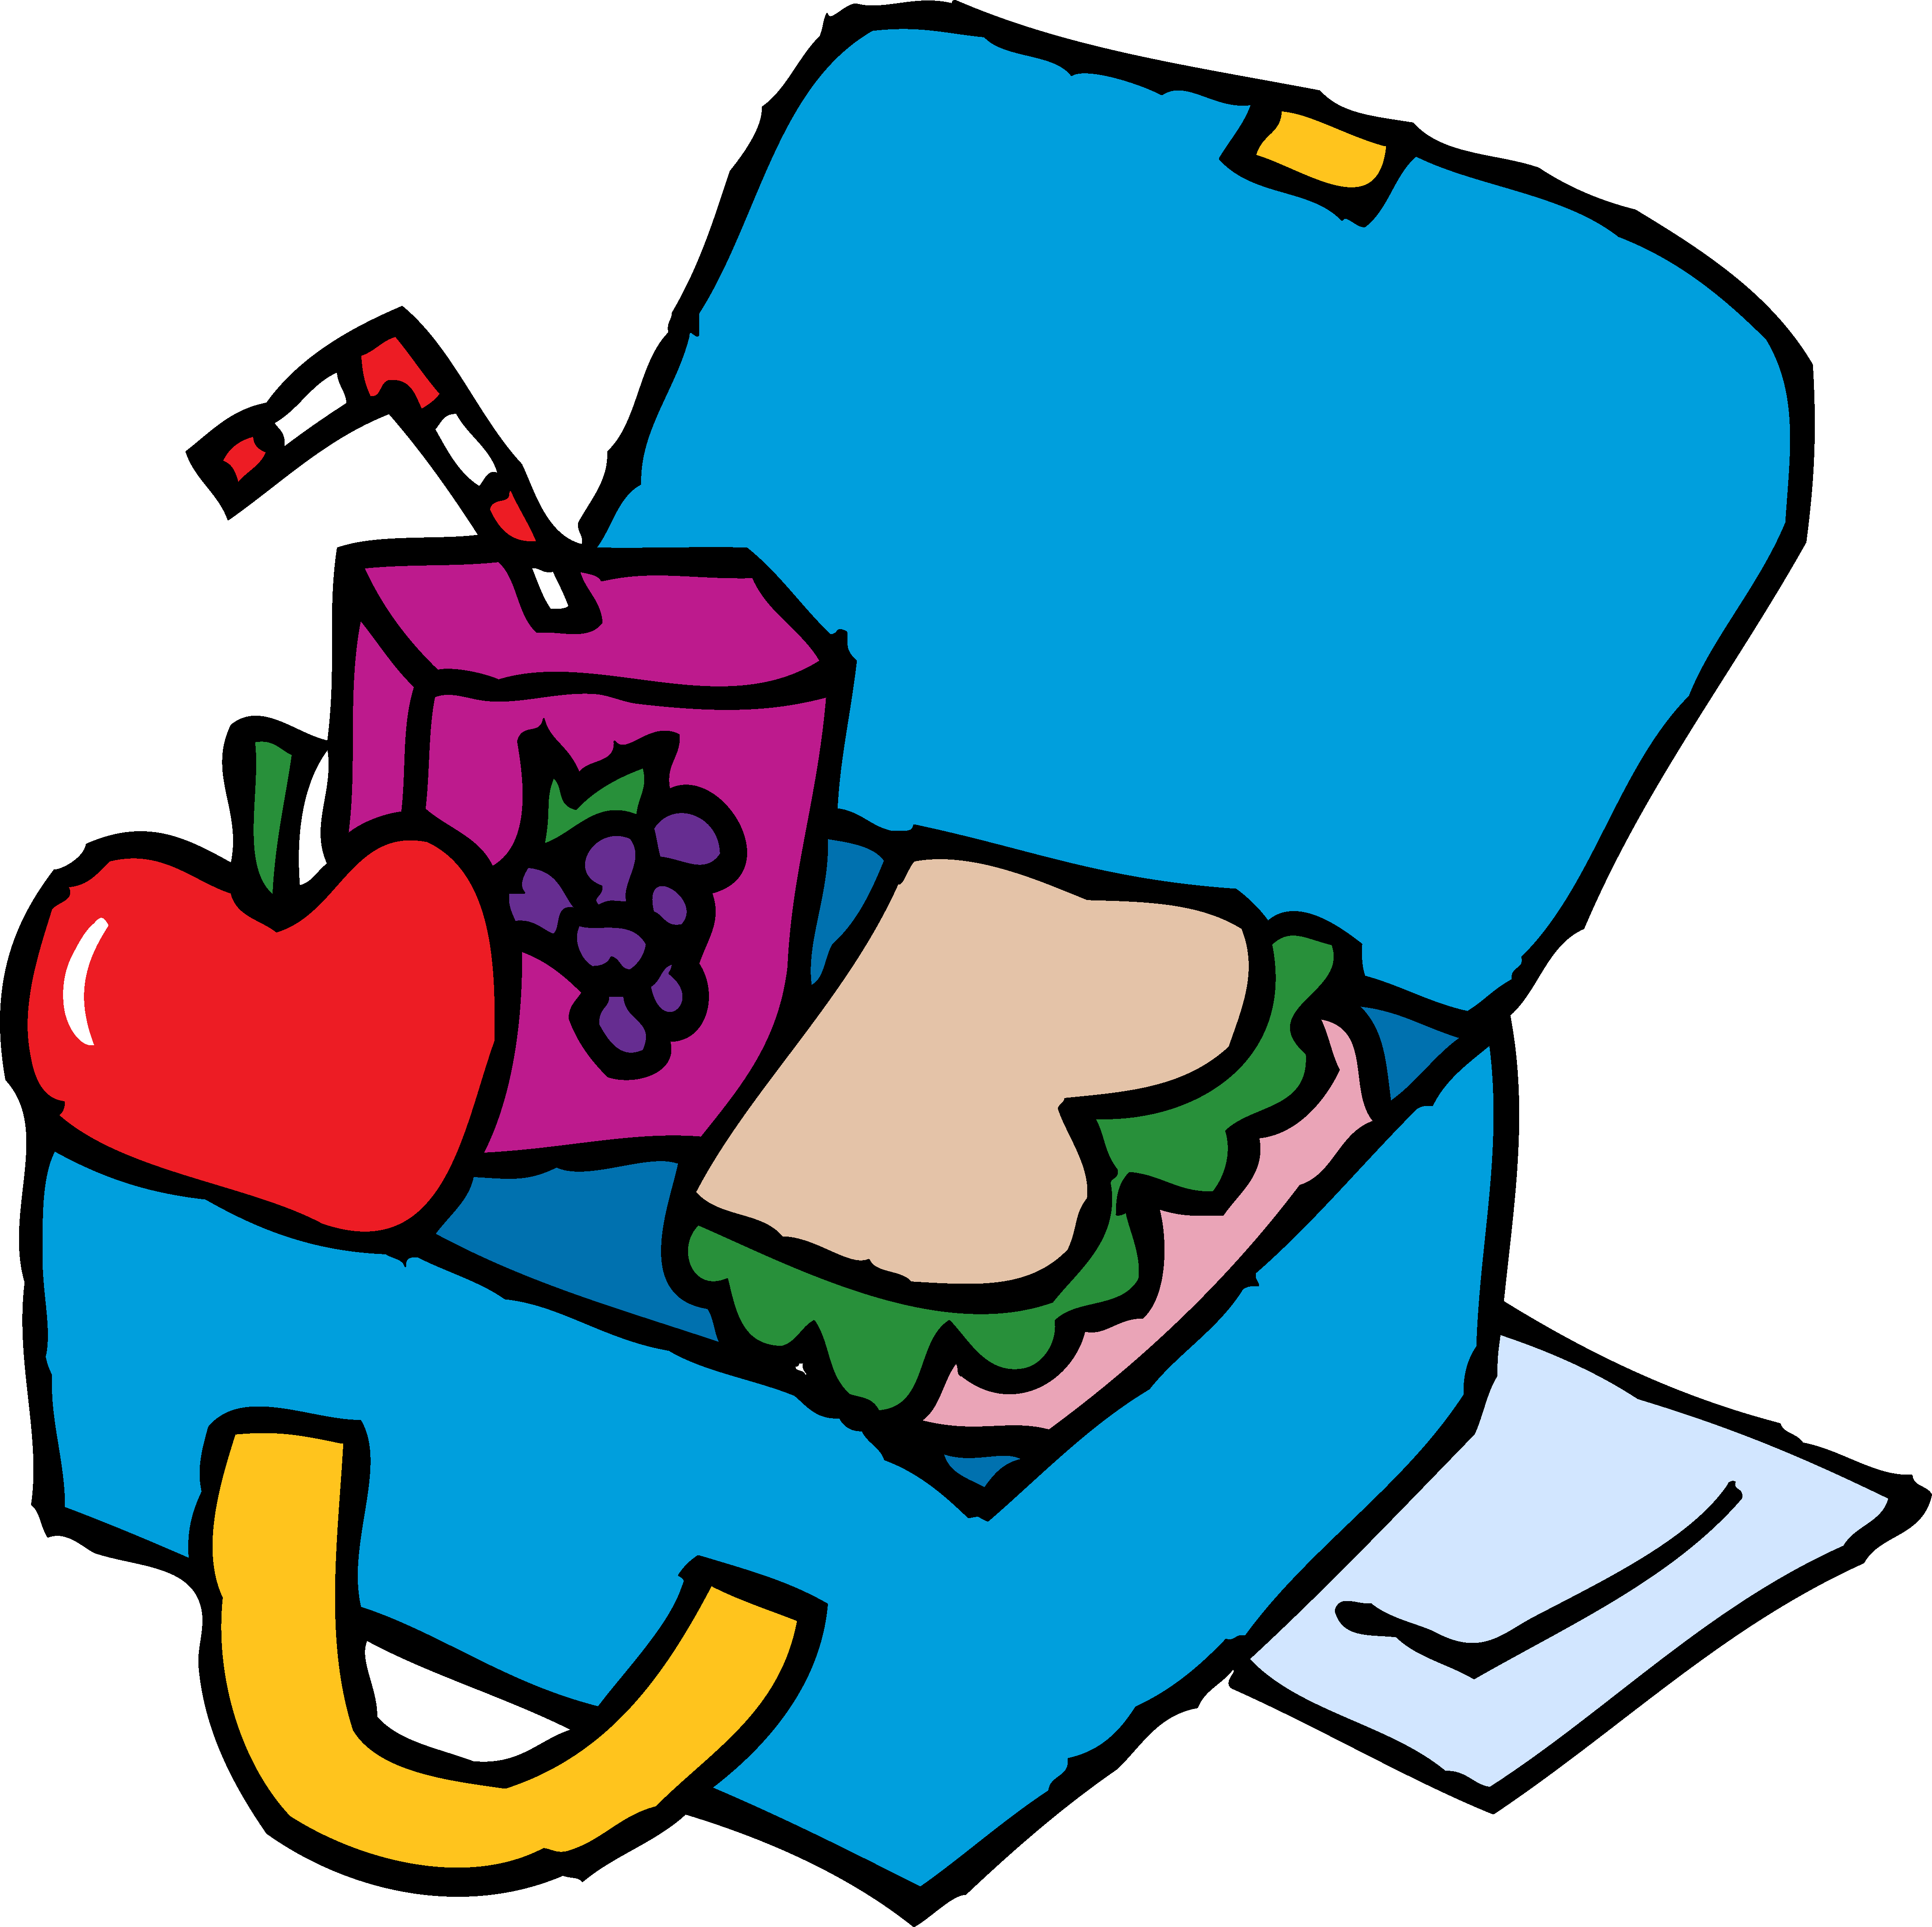 image royalty free library Lunchbox clipart. Snack lunchtime free on.